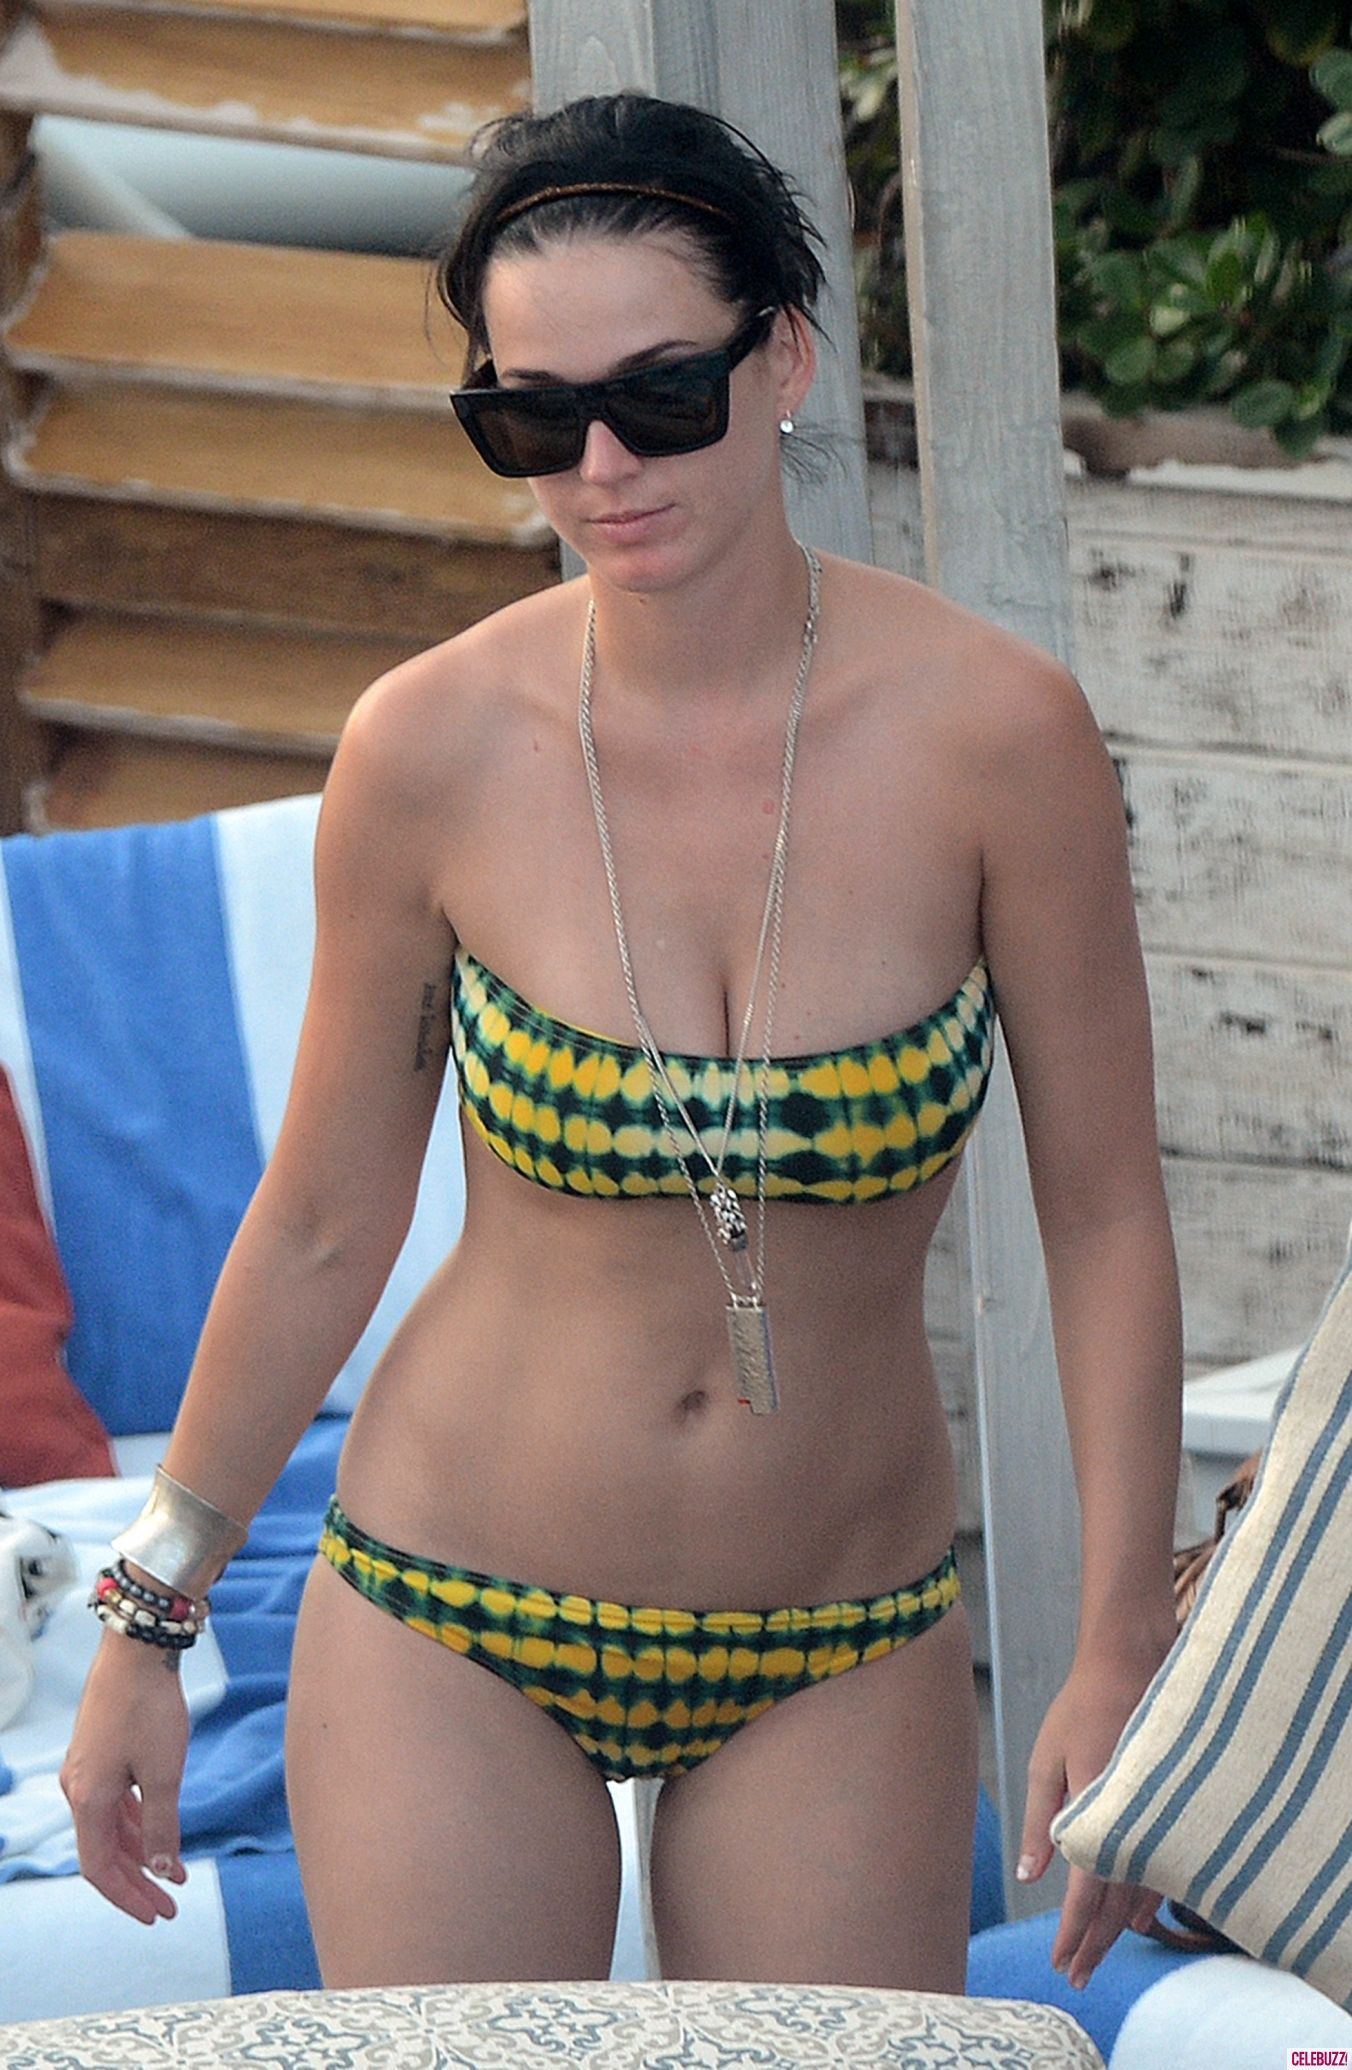 Pin By Kingofkings413 On Female Celebrities 4 Katy Perry Bikini